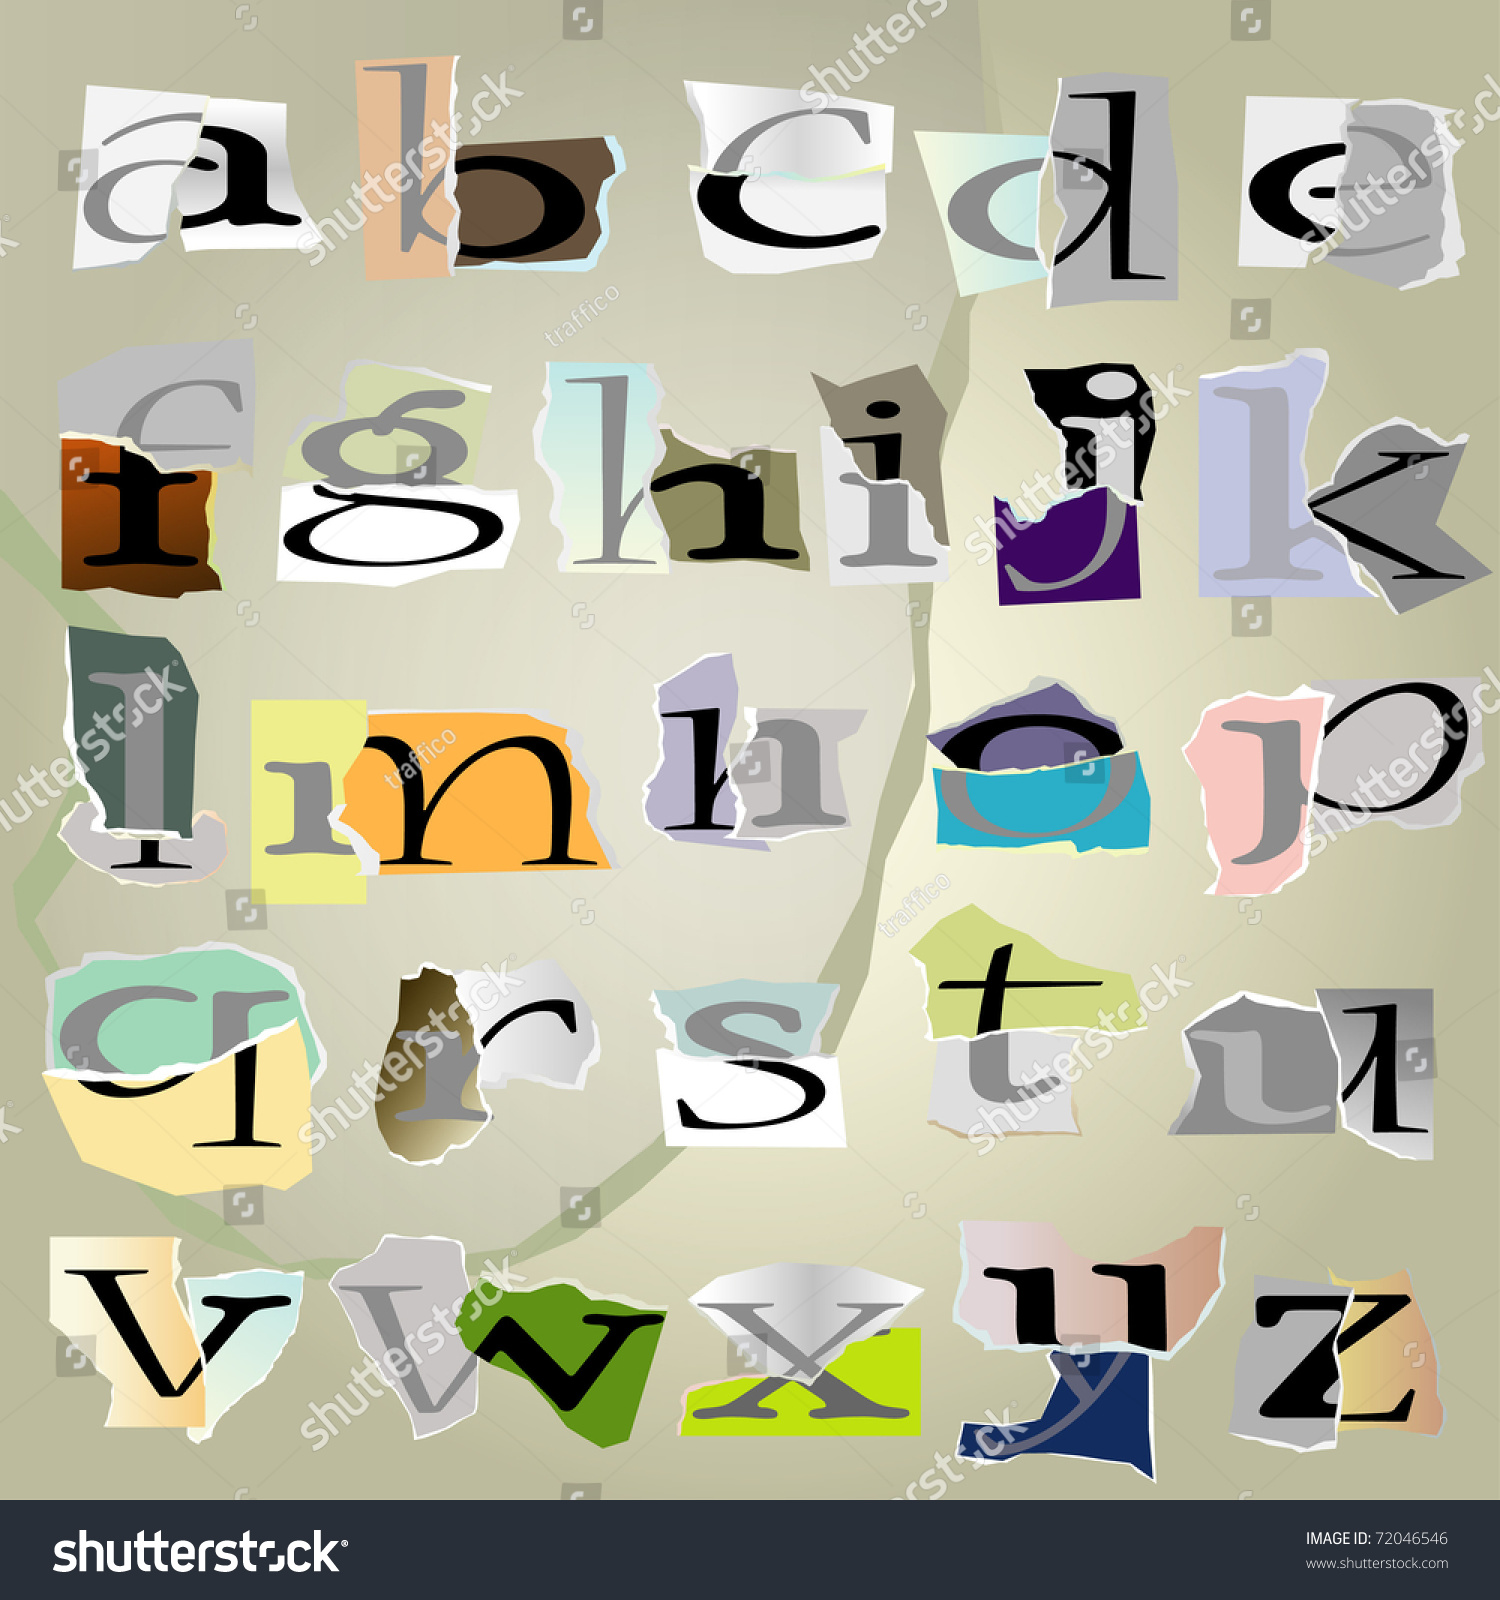 Vector Set Alphabet:Small Collage Latters Based On Ripped Paper ...